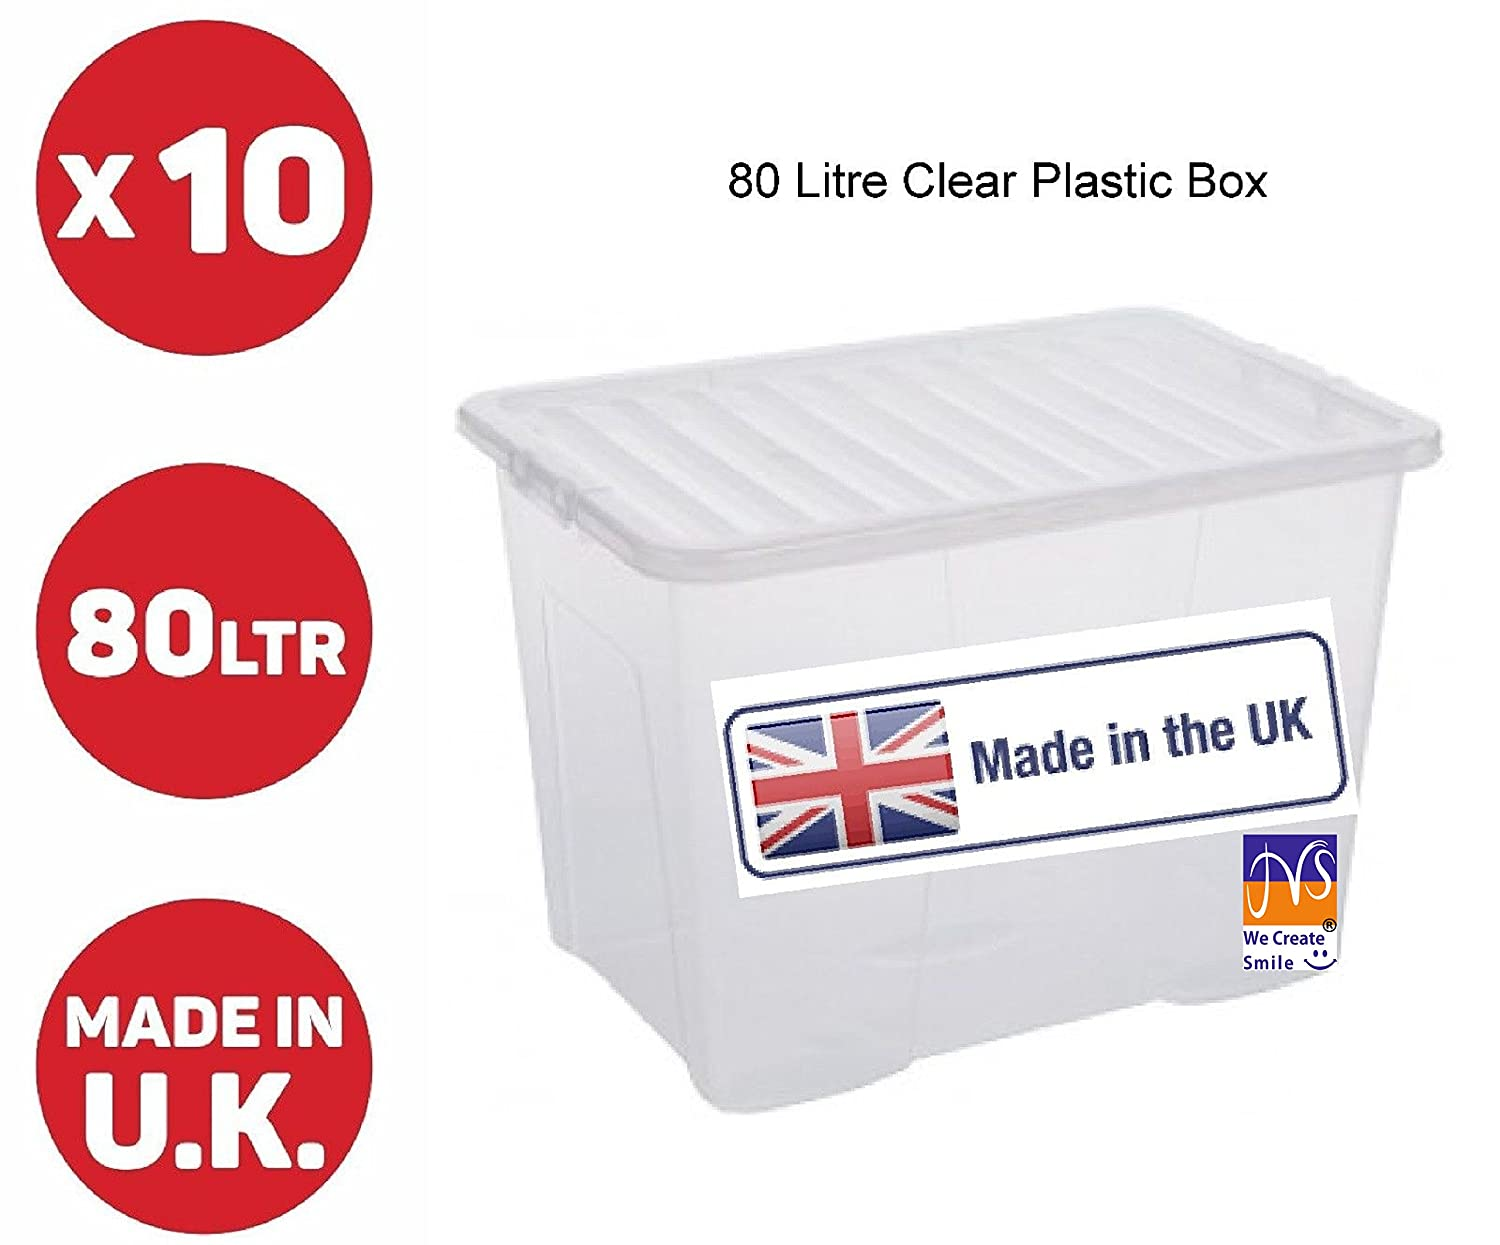 JMS® 10 x 80 LITRE PLASTIC STORAGE BOX - STRONG - EXTRA LARGE - CLEAR LID